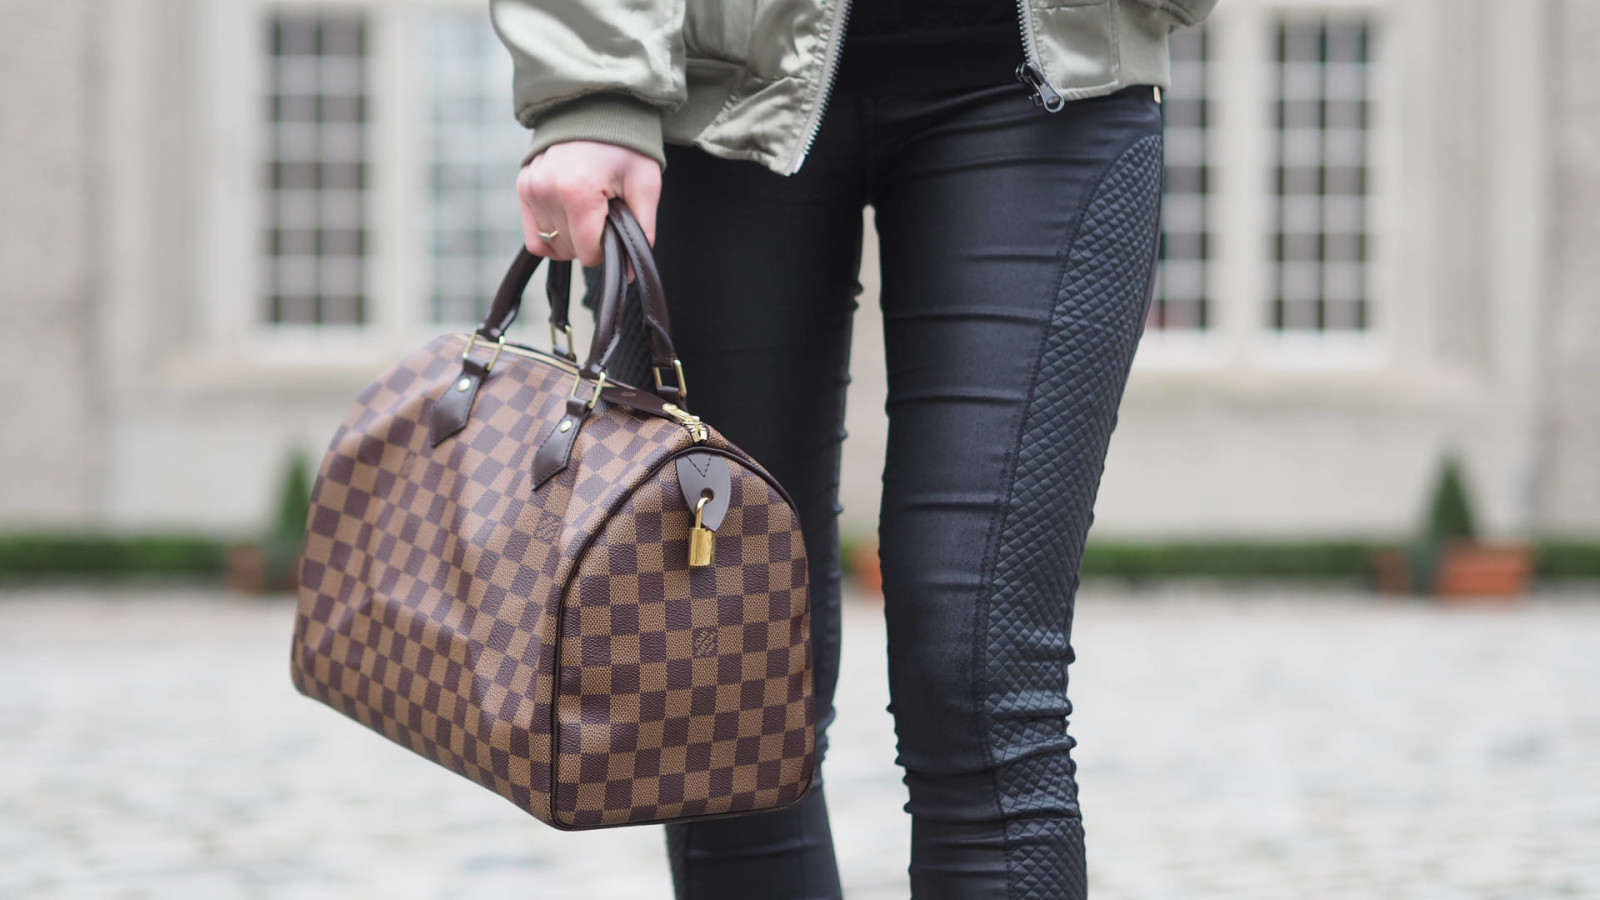 10 TIPS FOR BUYING YOUR FIRST DESIGNER BAG